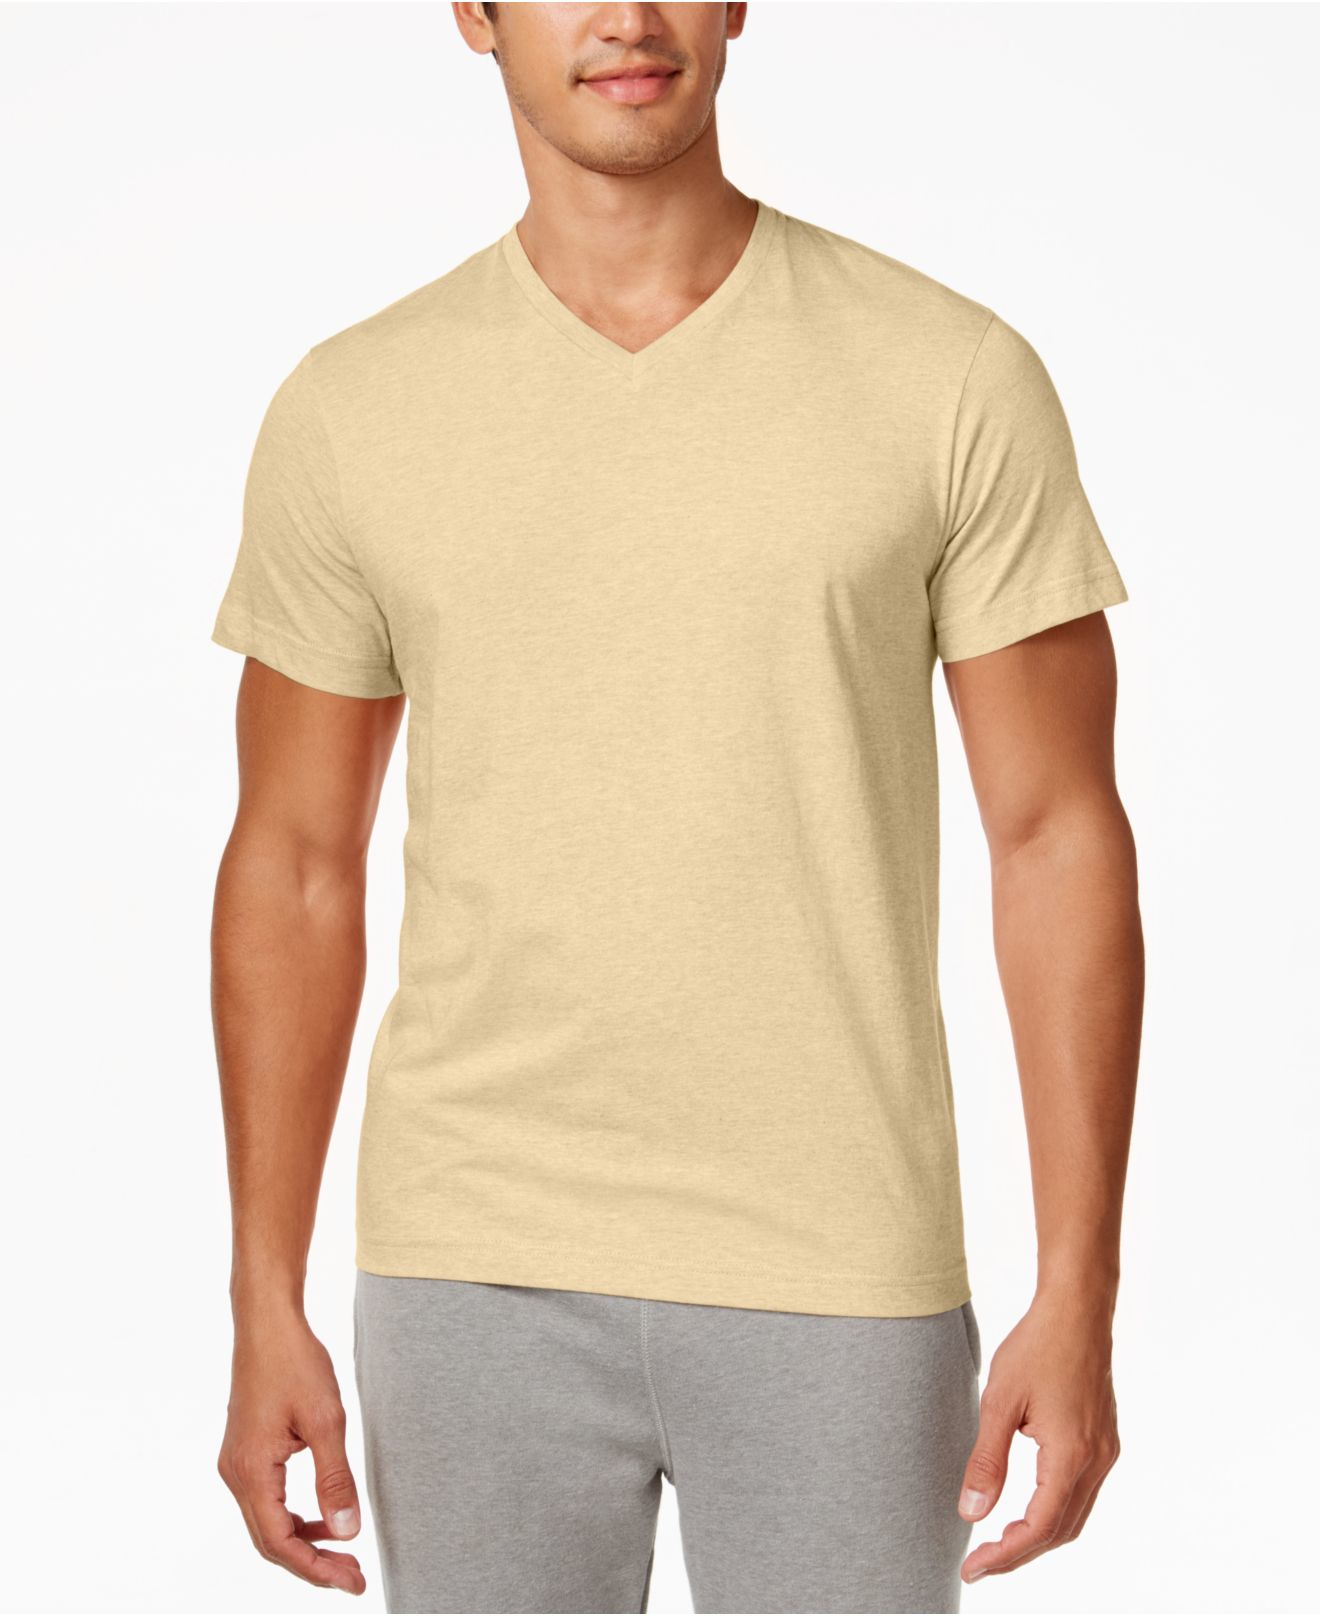 alfani s v neck t shirt only at macy s in for